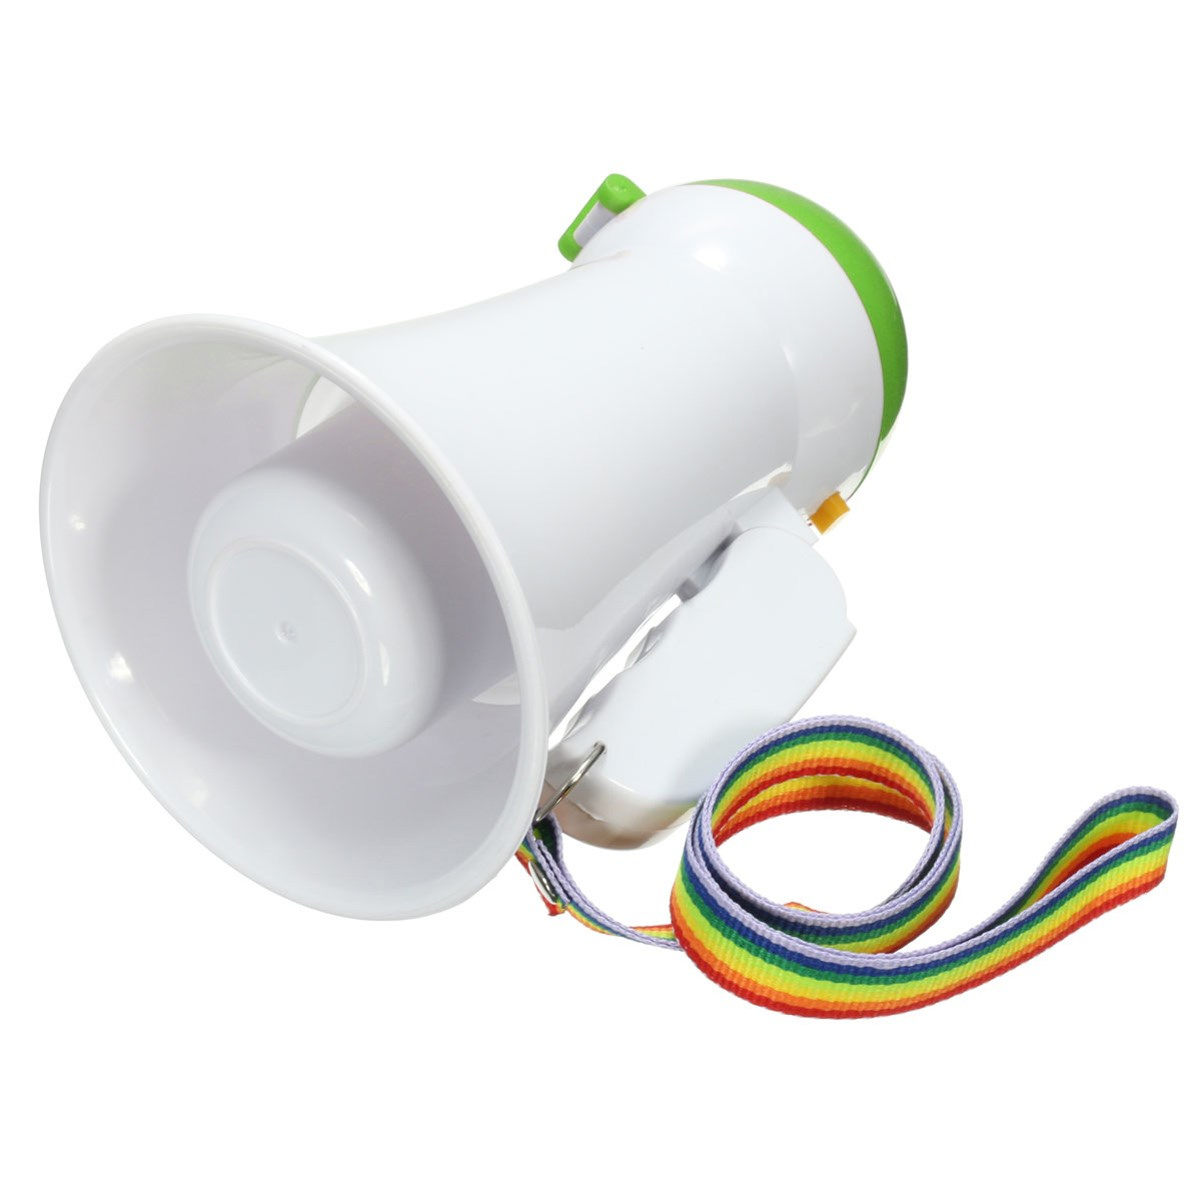 hight resolution of new portable handheld megaphone foldable 5w loud speaker bull horn voice amplifer in microphones from